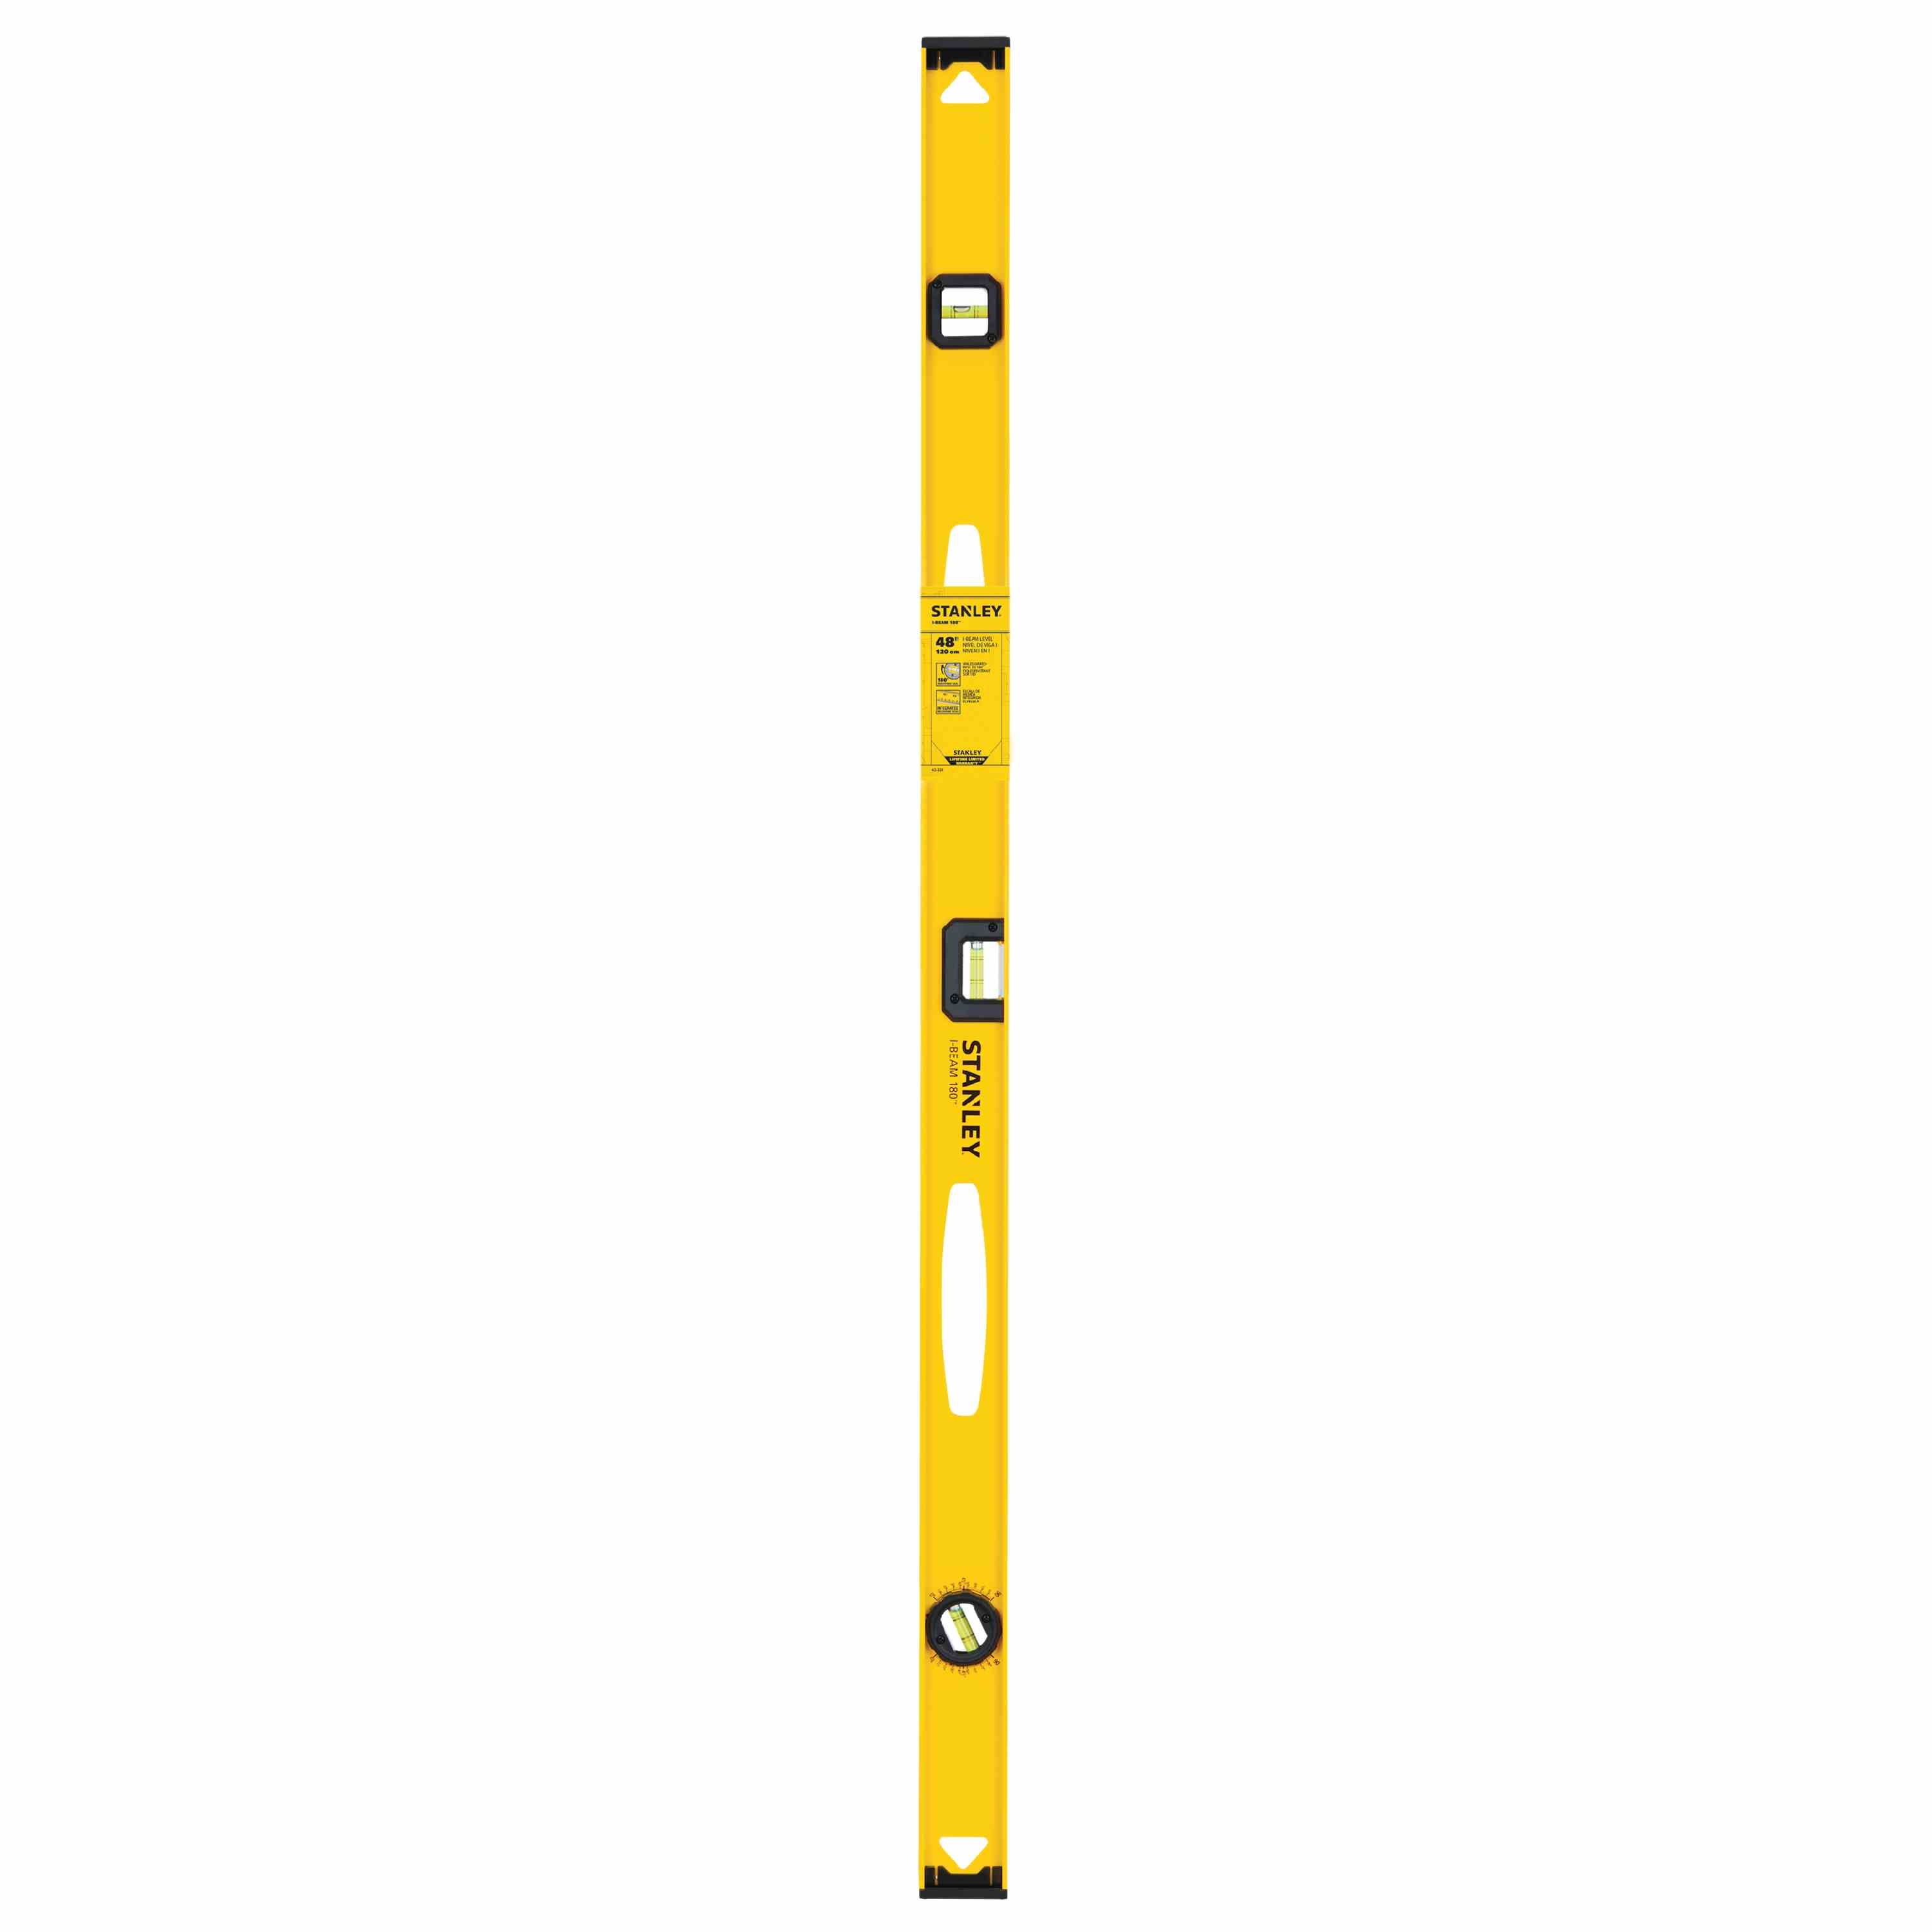 Stanley Tools - 48 in IBeam 180 Level - 42-328